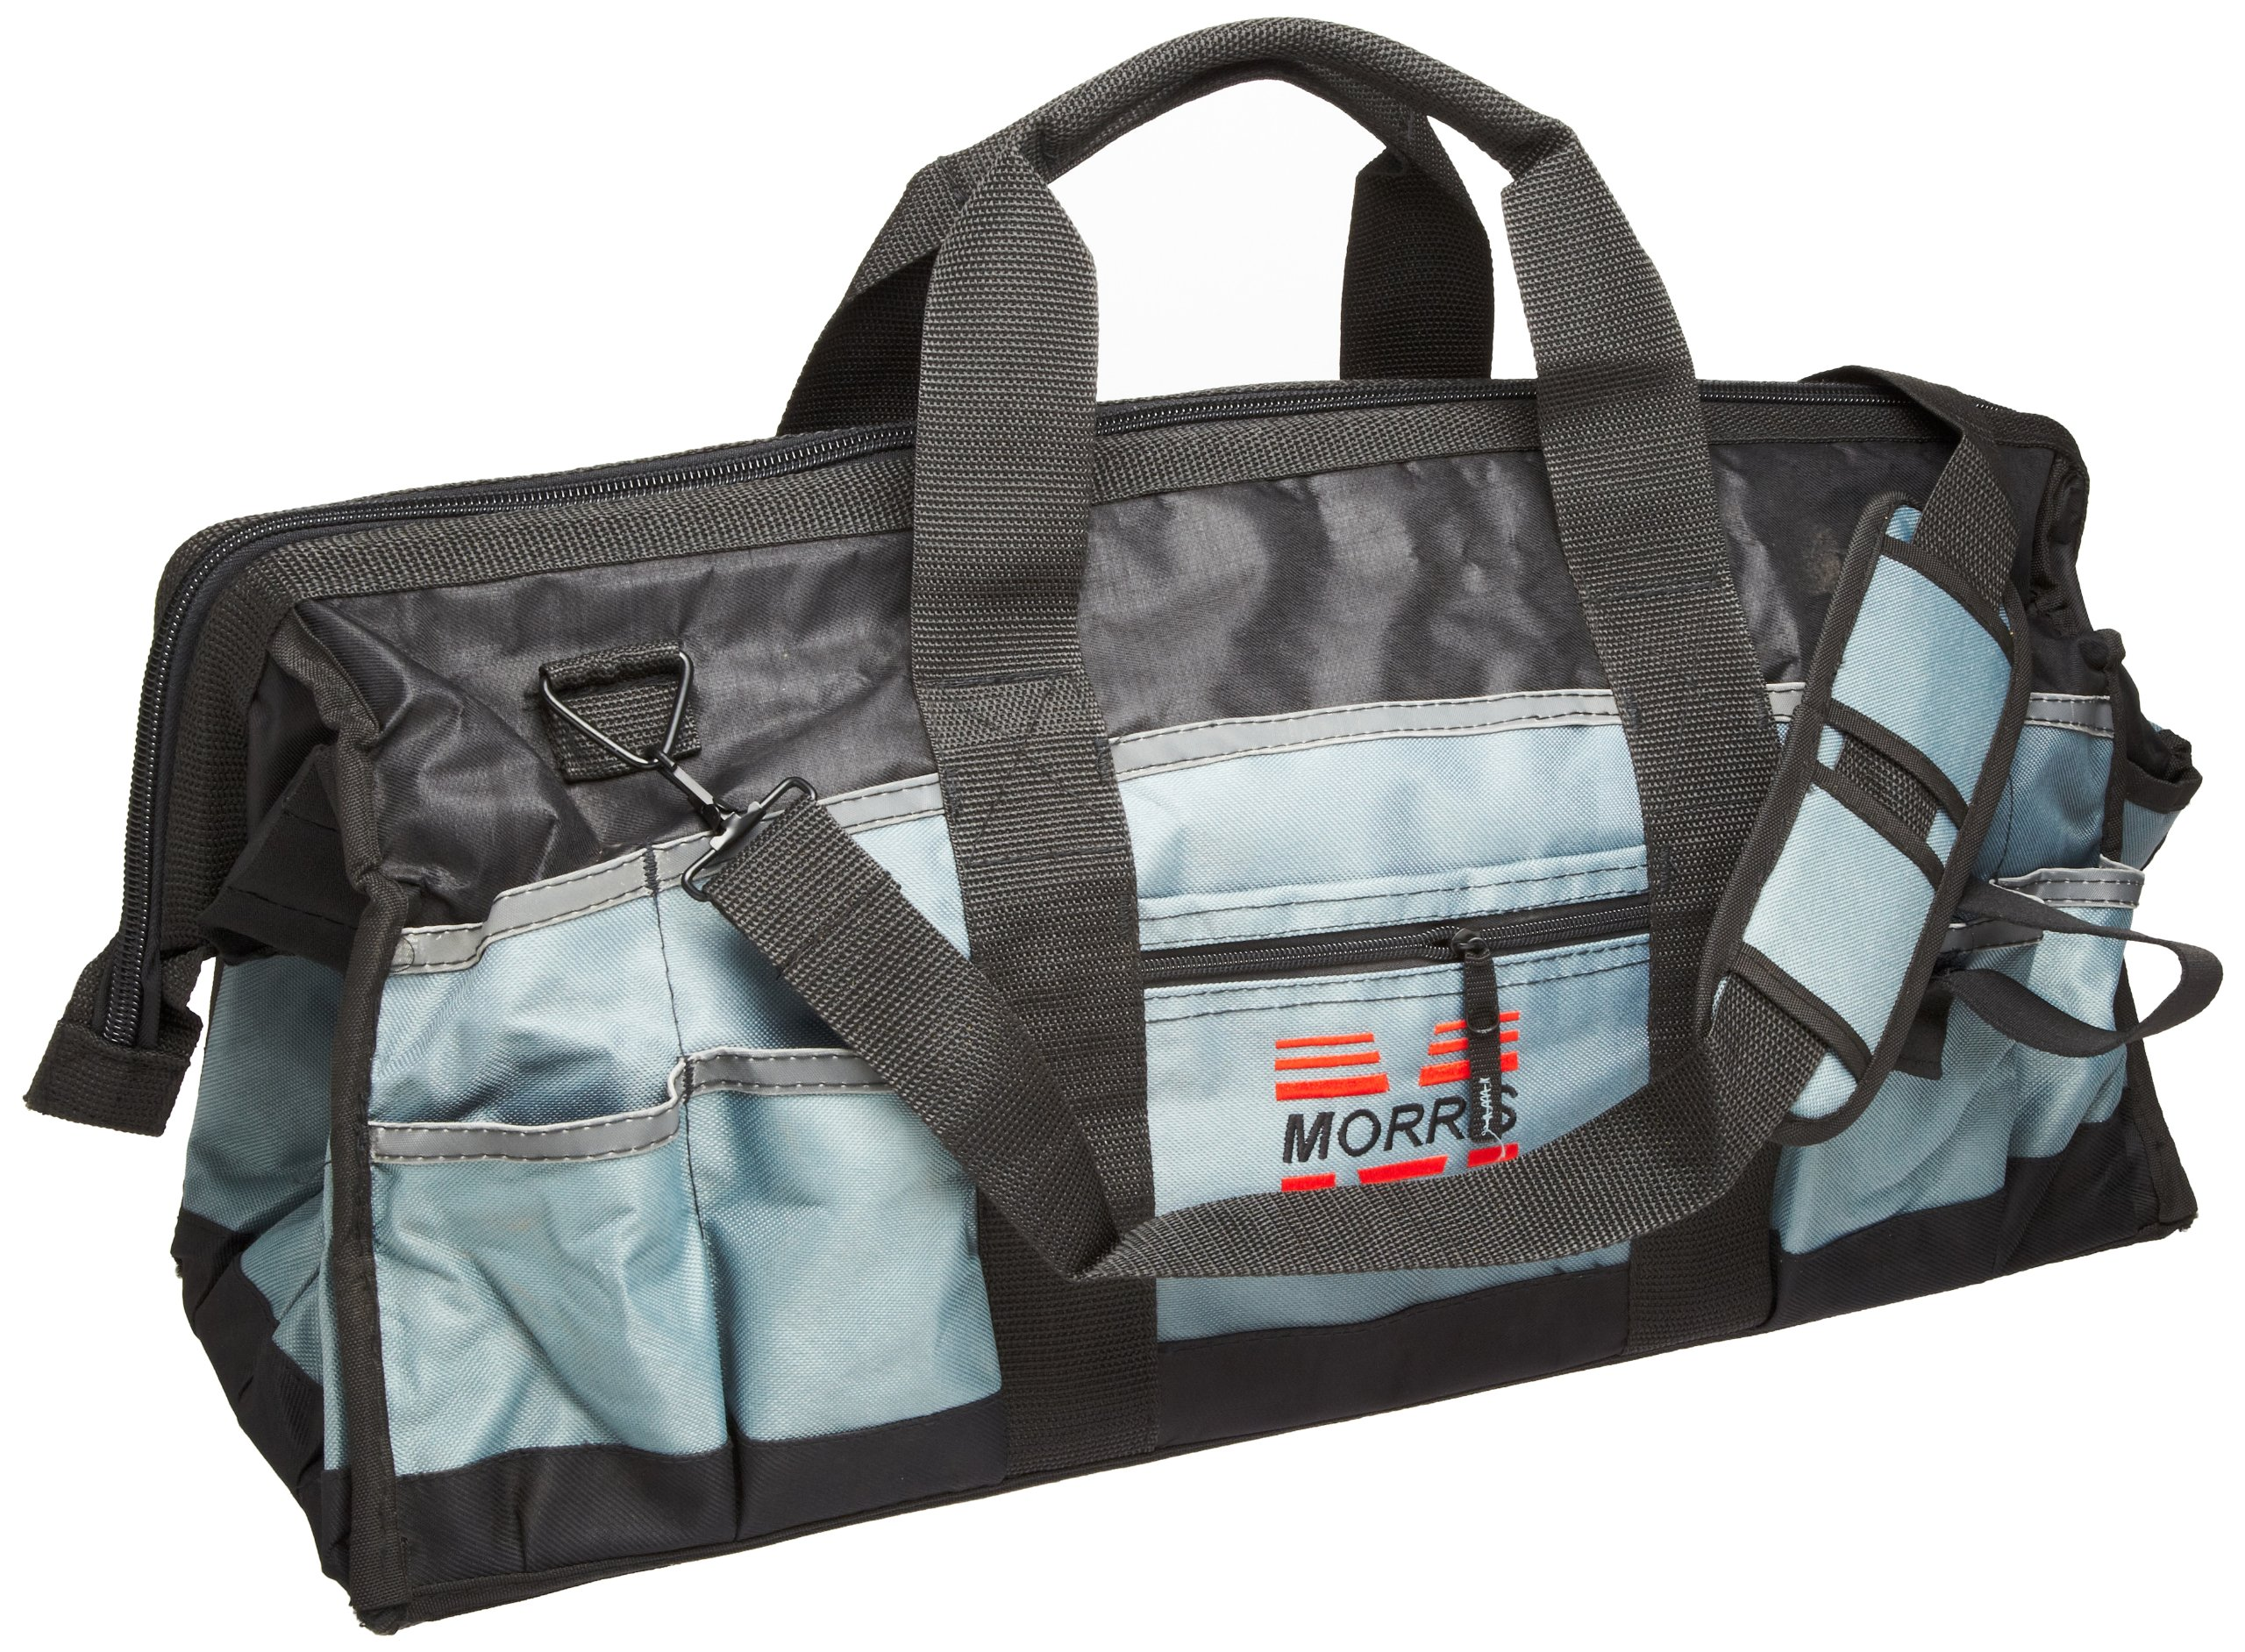 Morris Products 53506 Large Easy Search Tool Bag, 24'' Length, 8.5'' Width, 13'' Height, 63 Total - 24 inside, 39 outside Pockets